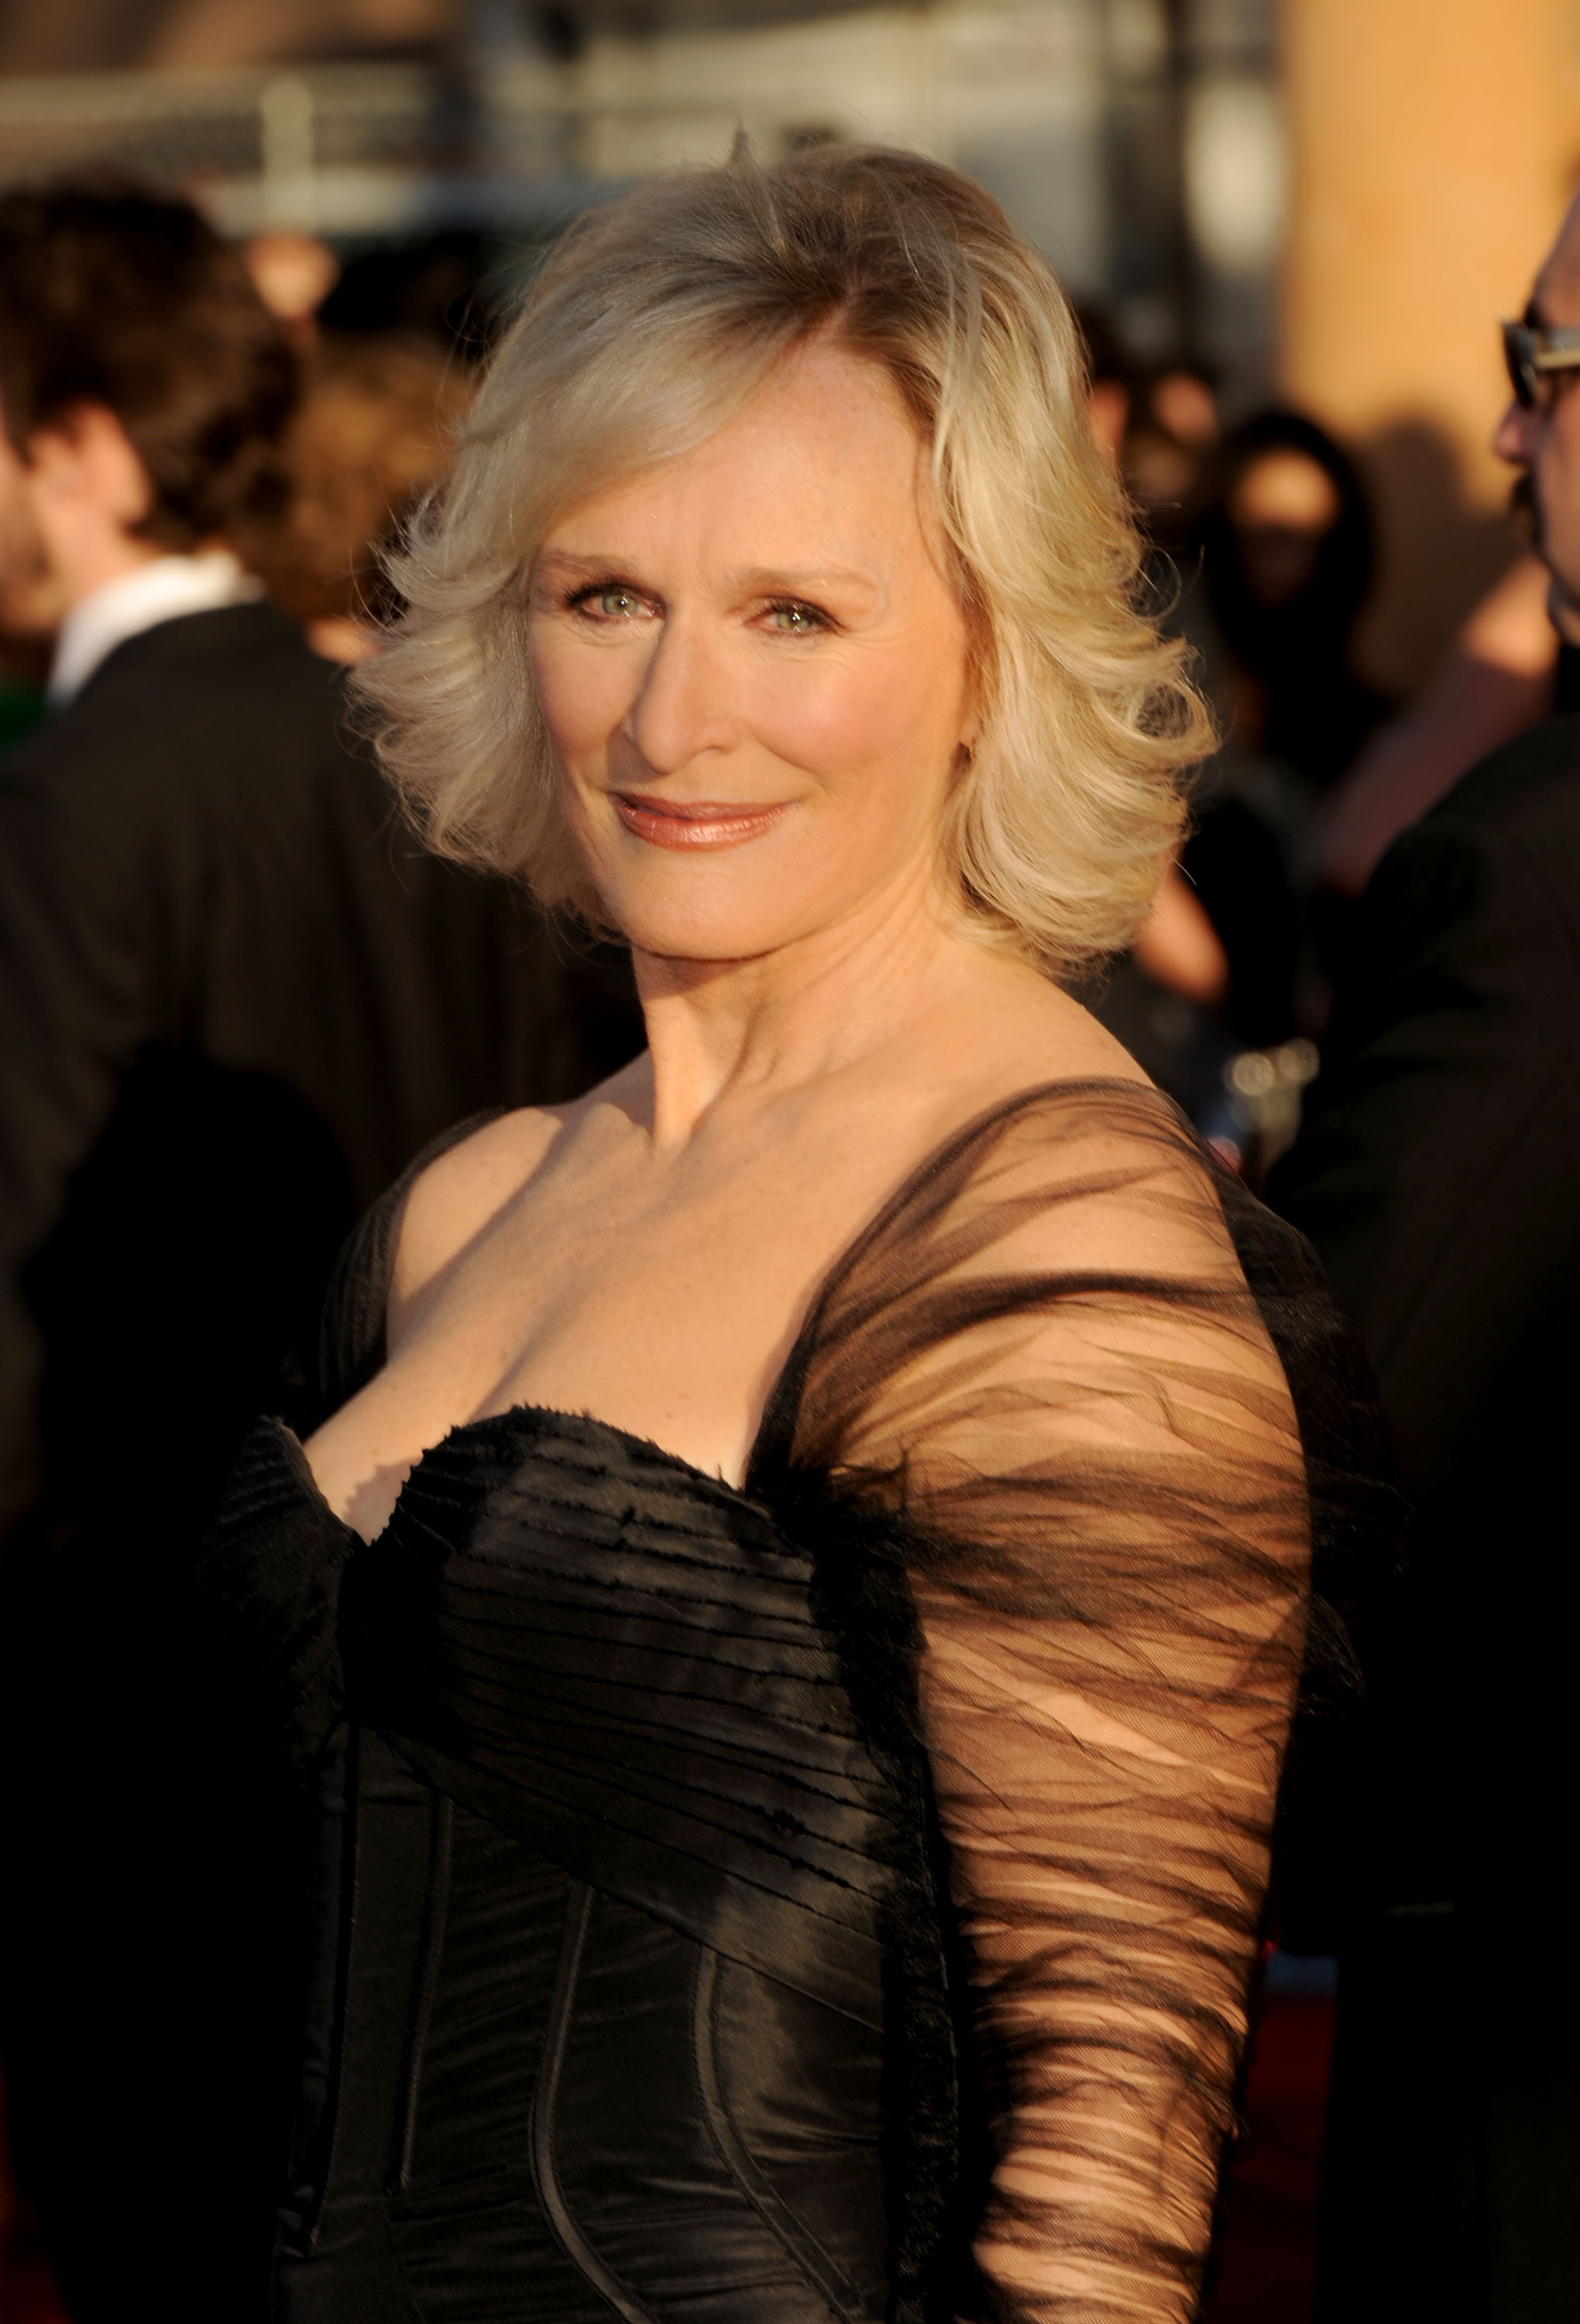 Glenn Close at the SAG Awards